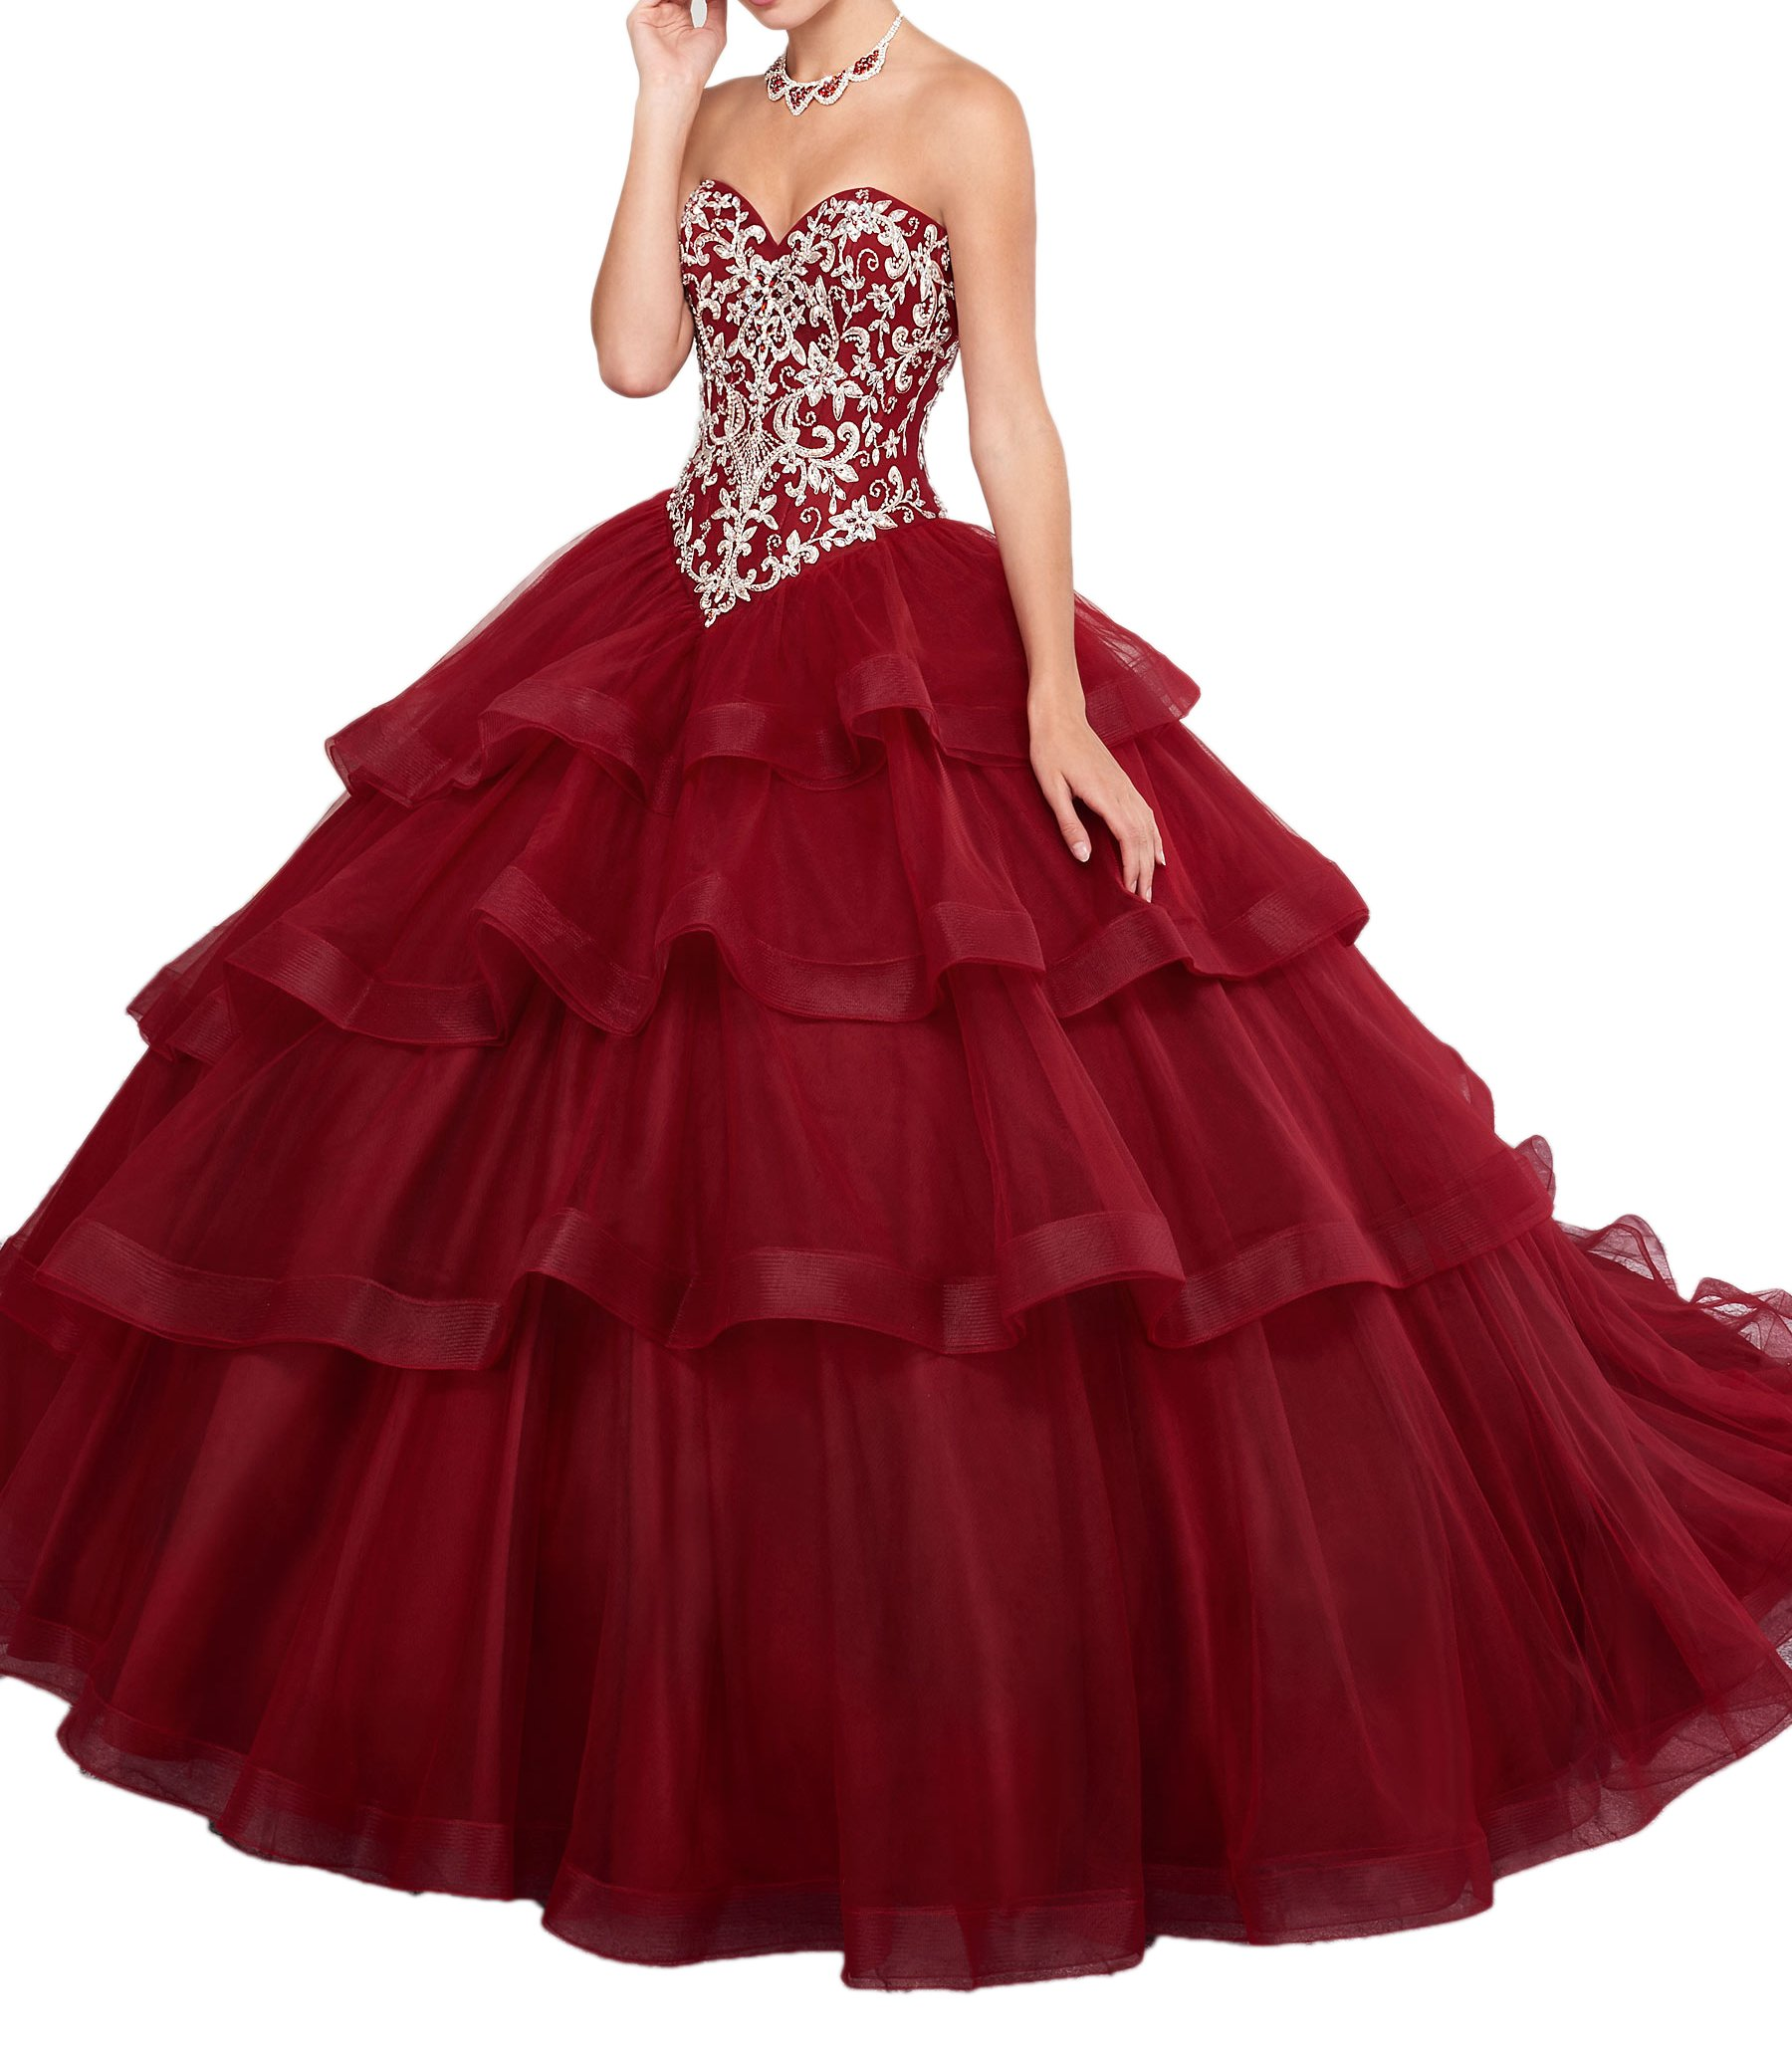 Beilite Women's Sweetheart Sequins Tulle Long Prom Quinceanera Dresses Dark Red 4